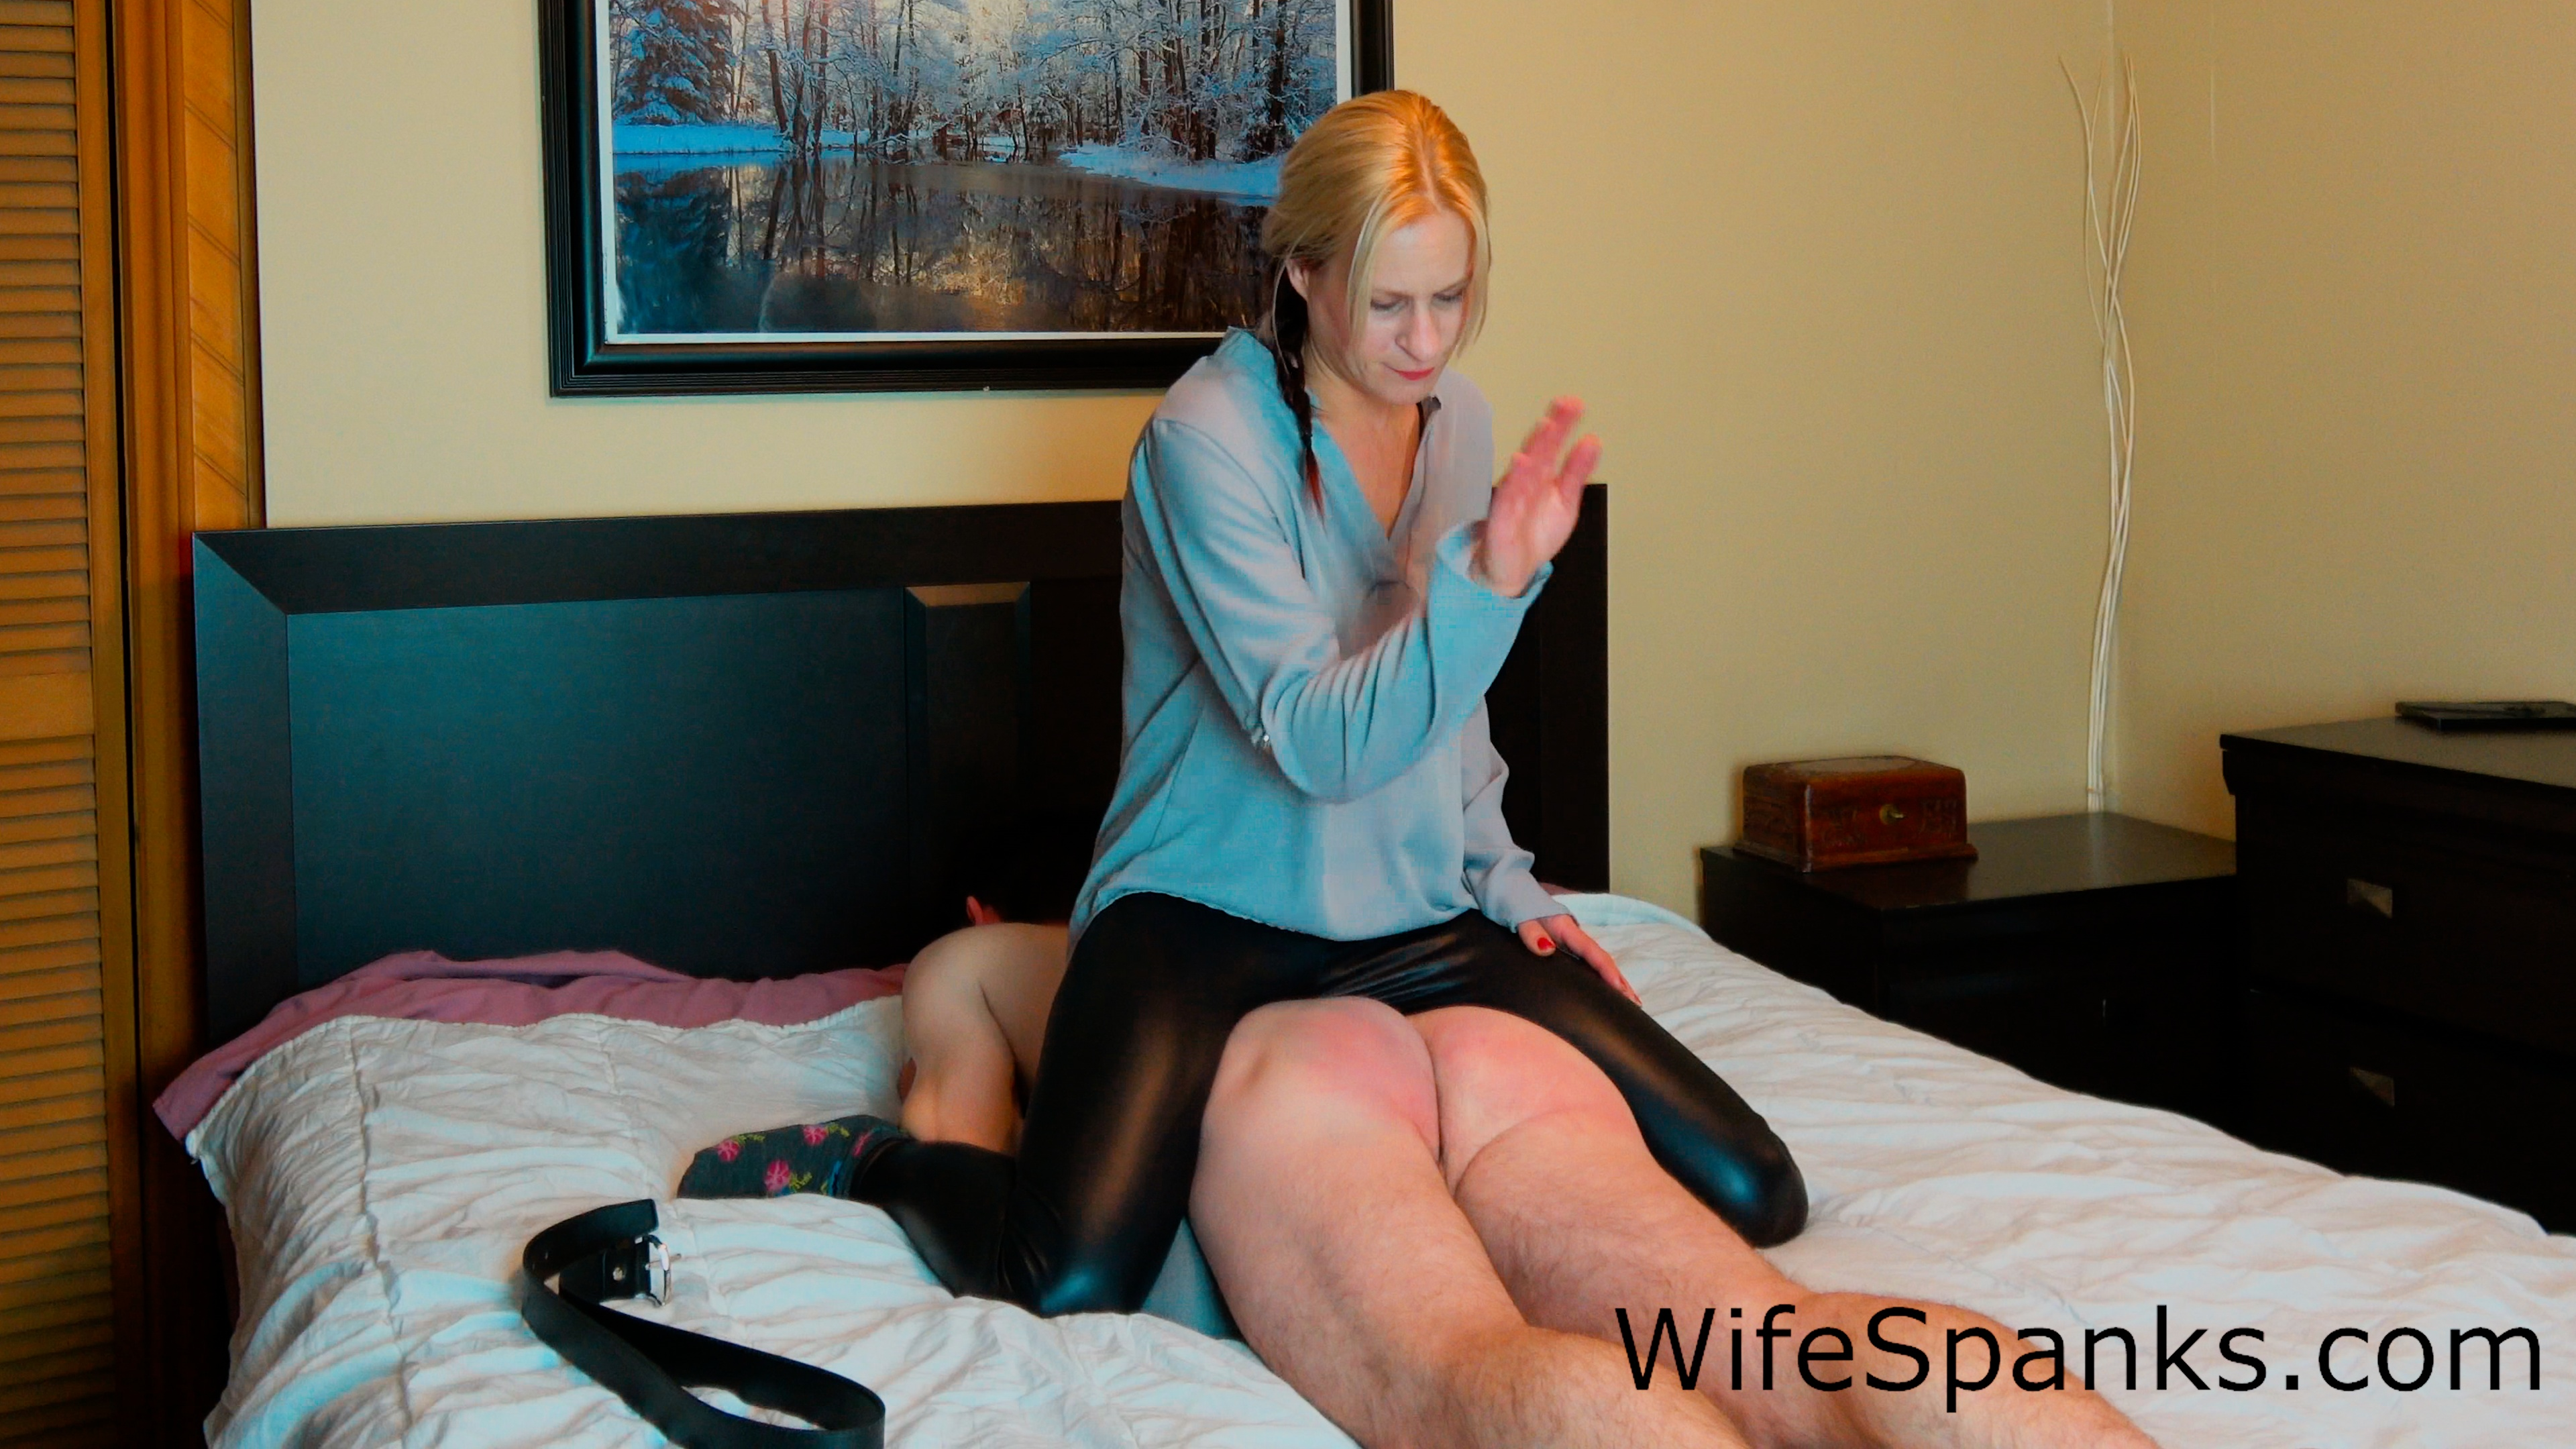 Wife spanks hubby in front of